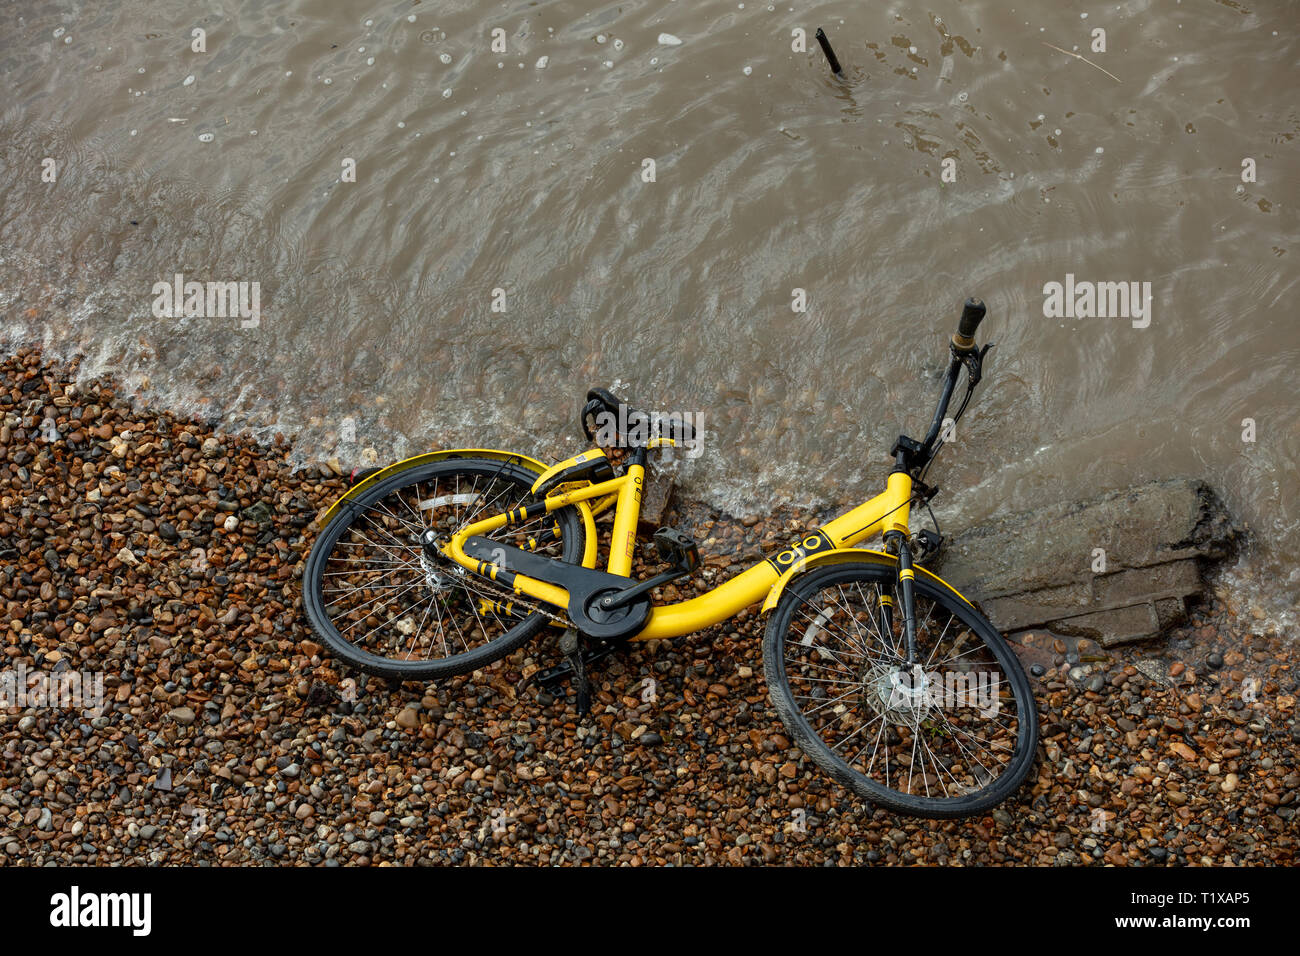 Yellow bicycle emerges from the river Thames, London, England, UK during low tide. - Stock Image